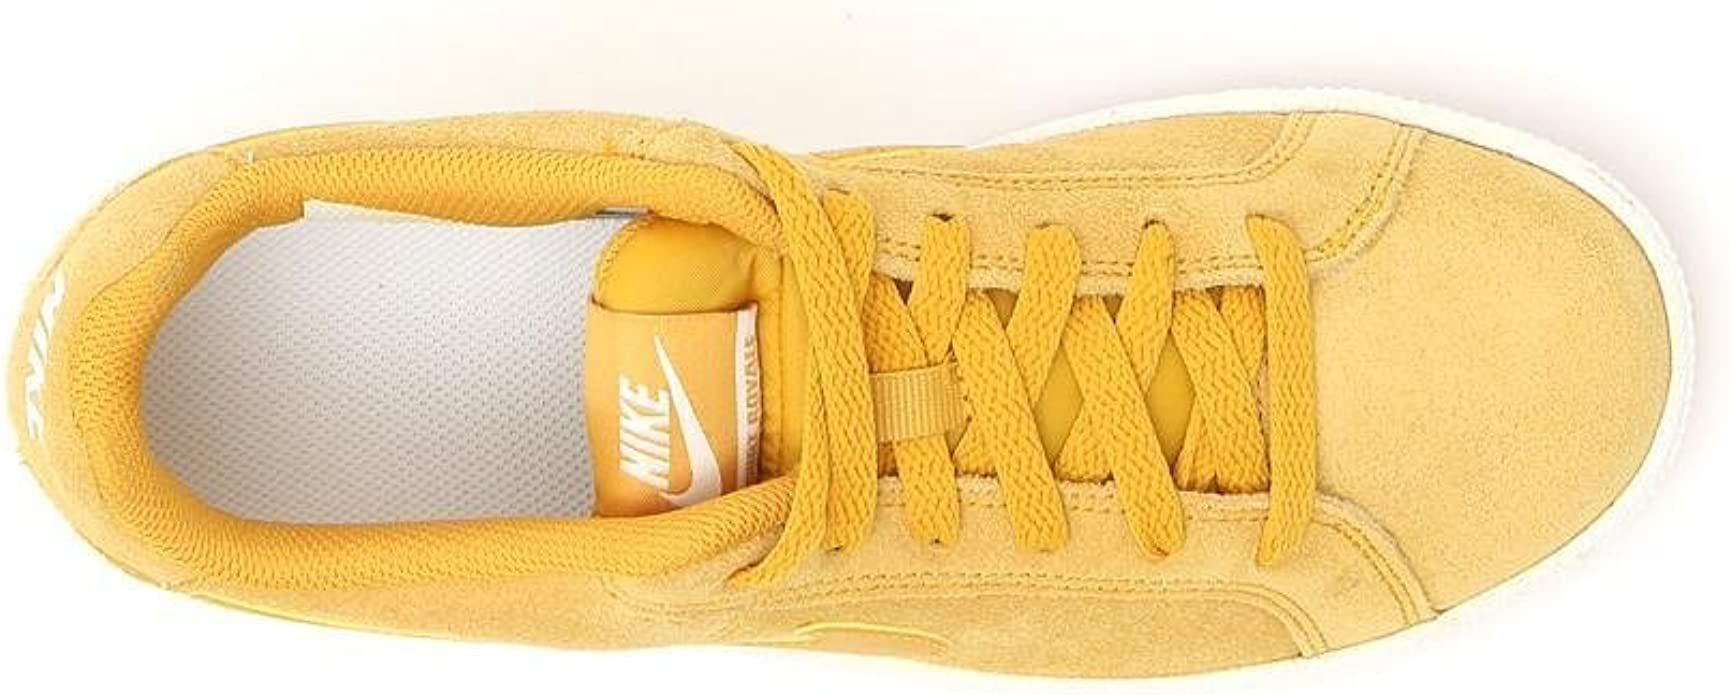 Nike Court Royale Suede Mostaza: Amazon.it: Scarpe e borse